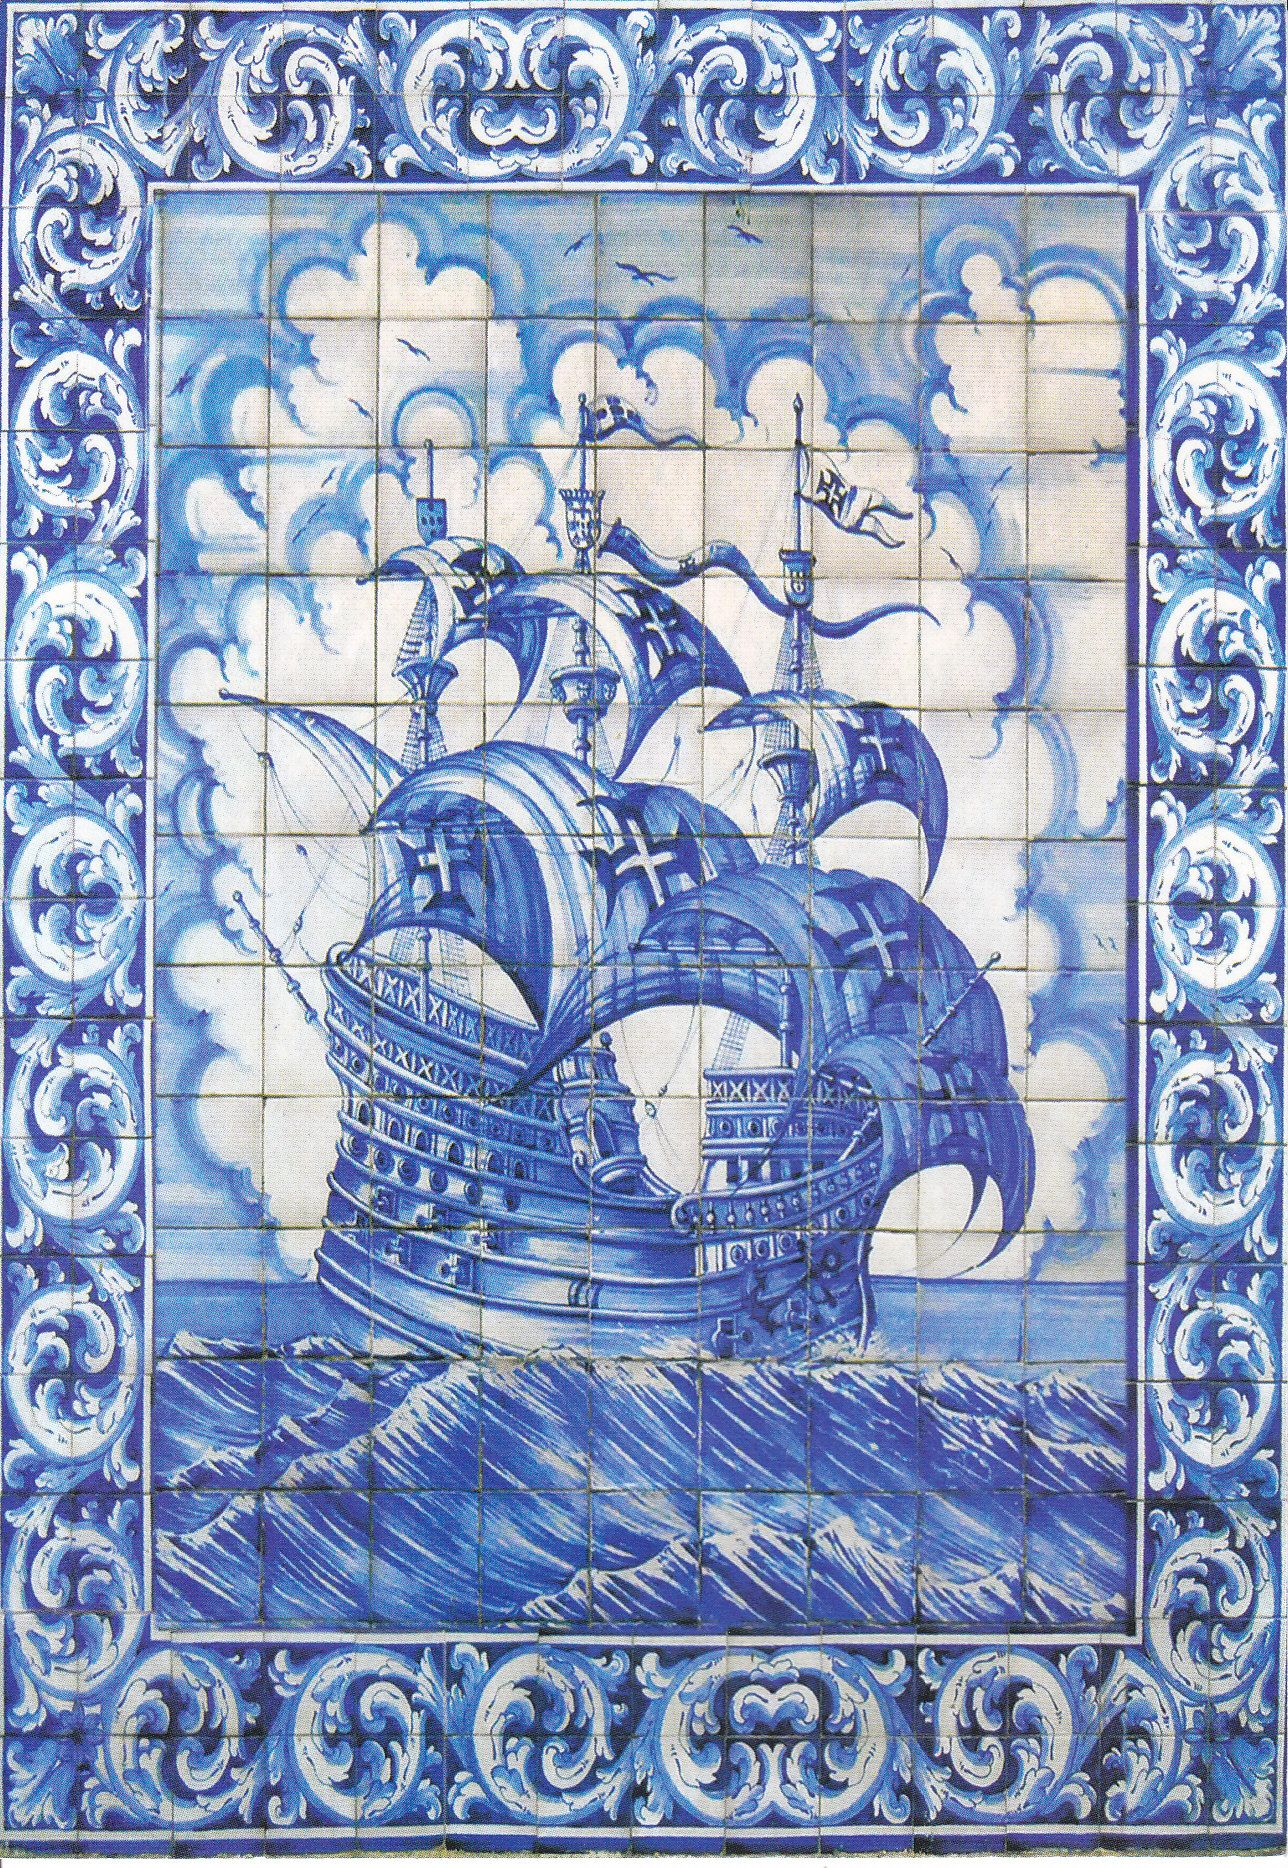 portugal azulejos nau portuguesa portuguese mosaics tiles pinterest portugal. Black Bedroom Furniture Sets. Home Design Ideas